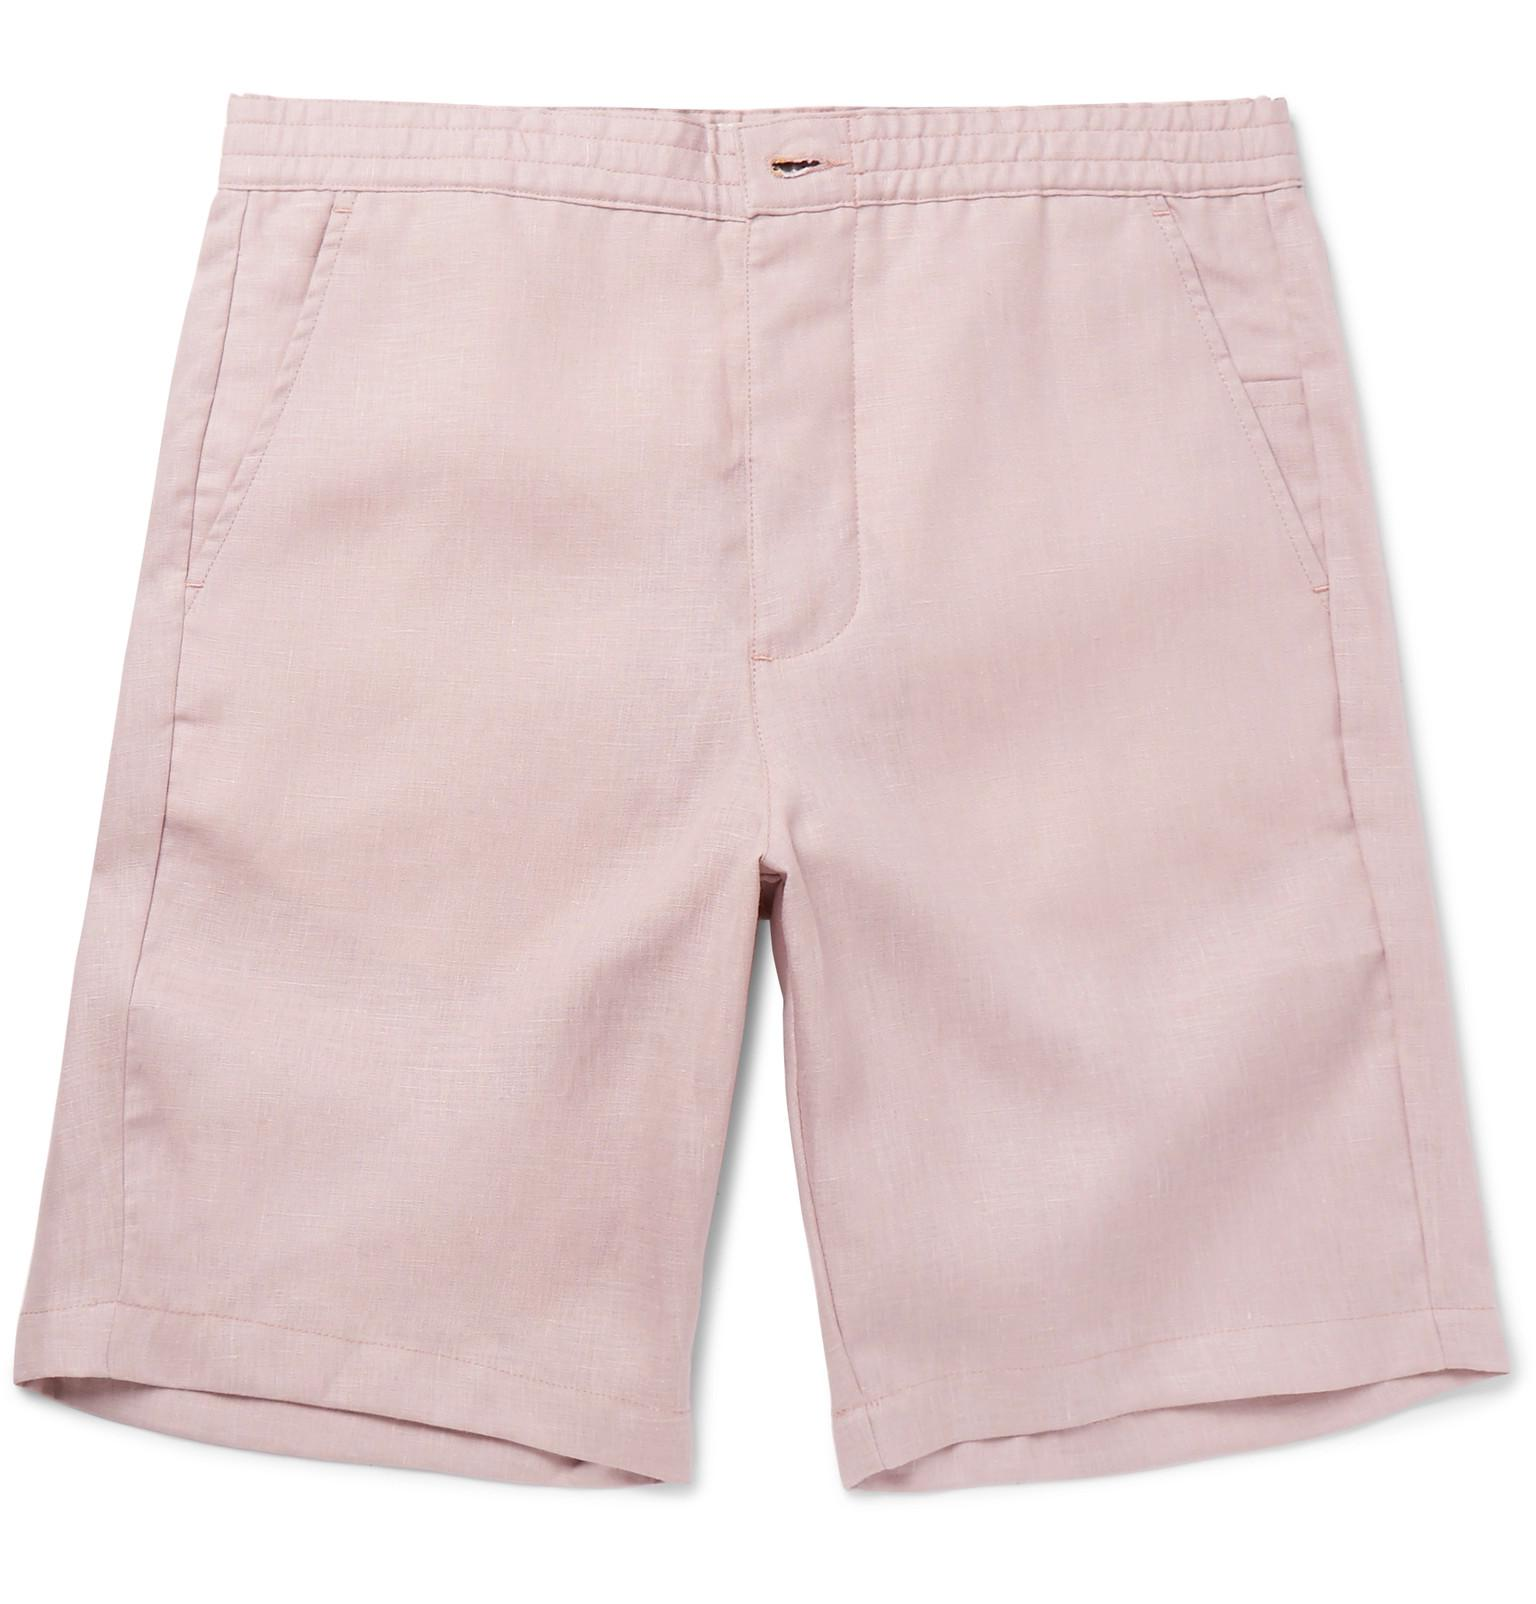 Linen Drawstring Shorts Oliver Spencer etcq8r19jS